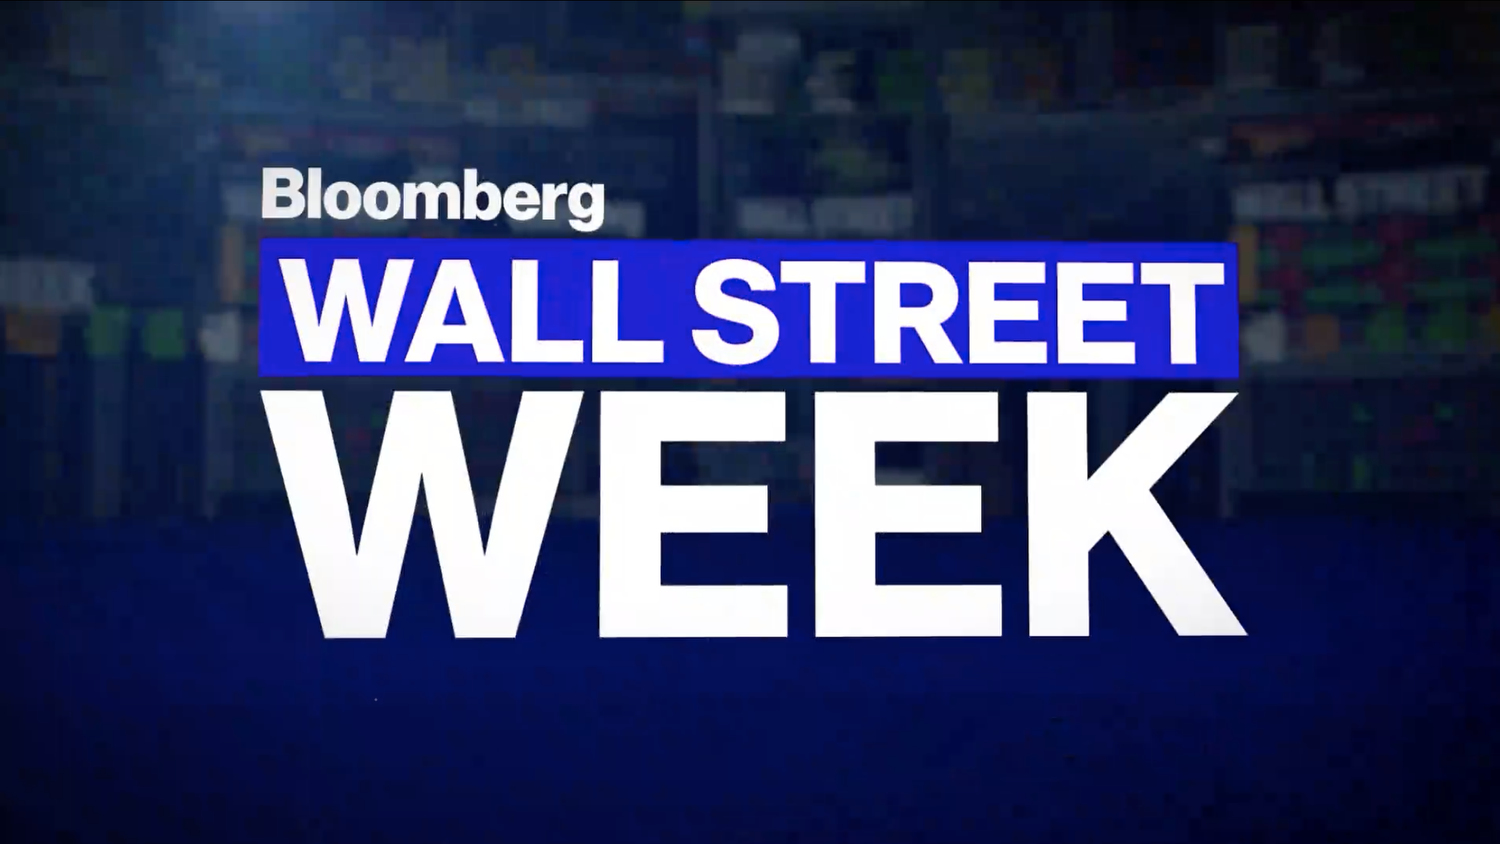 ncs_Bloomberg-Wall-Street-Week-Graphics_0010